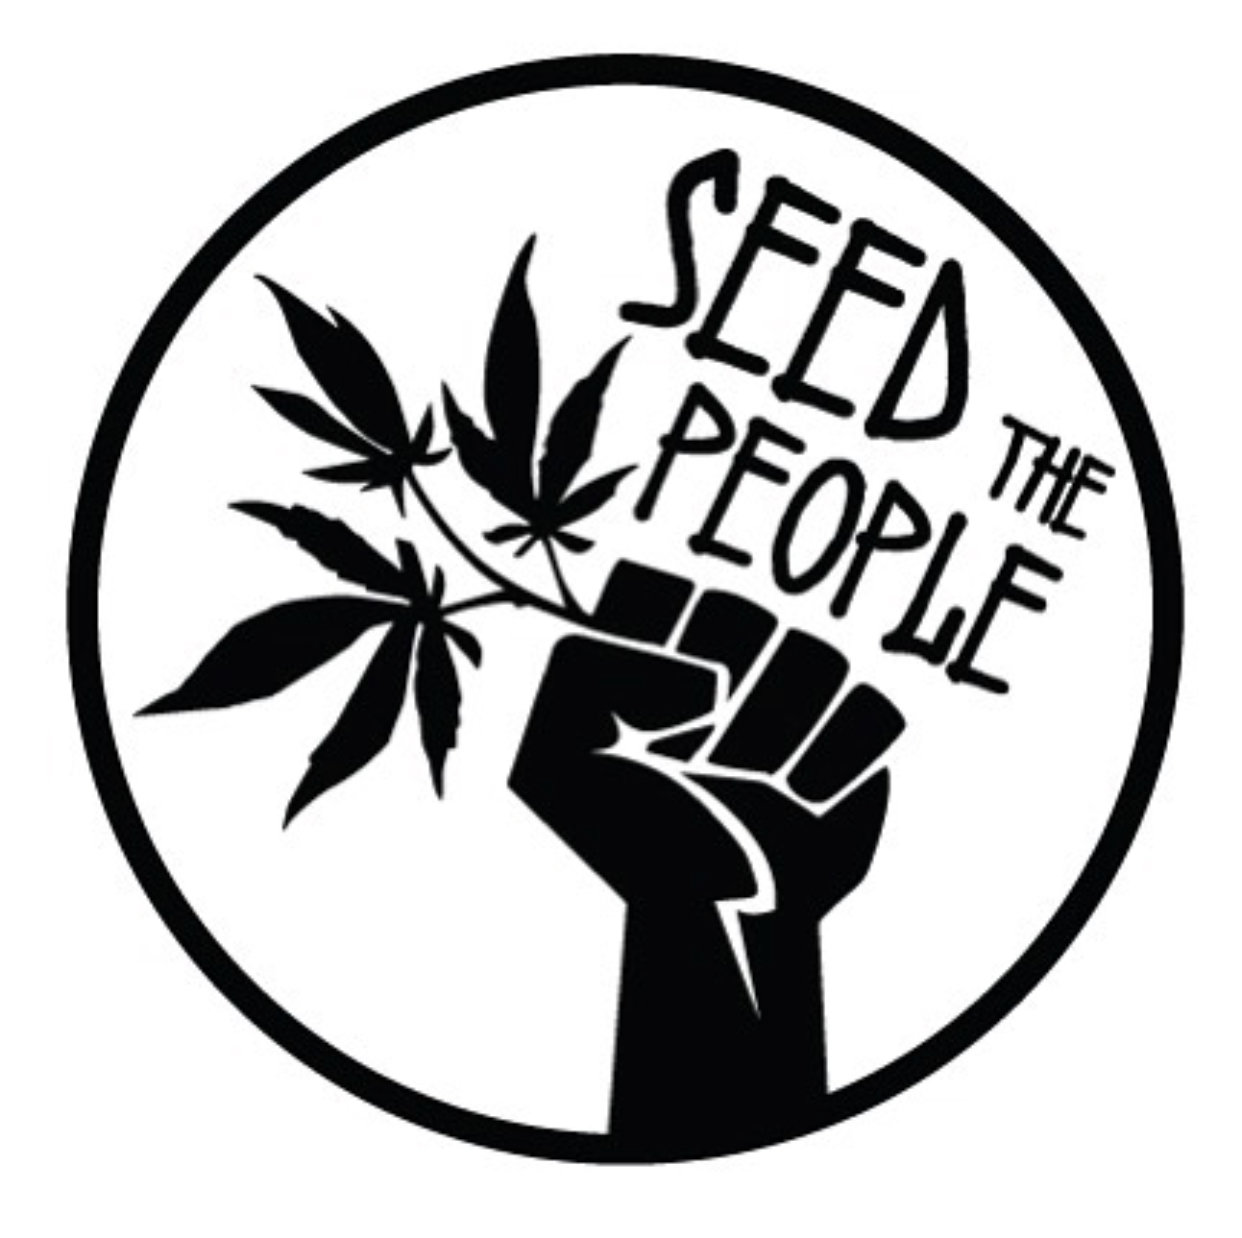 Seed the People Photoperiod & Autoflower Seeds